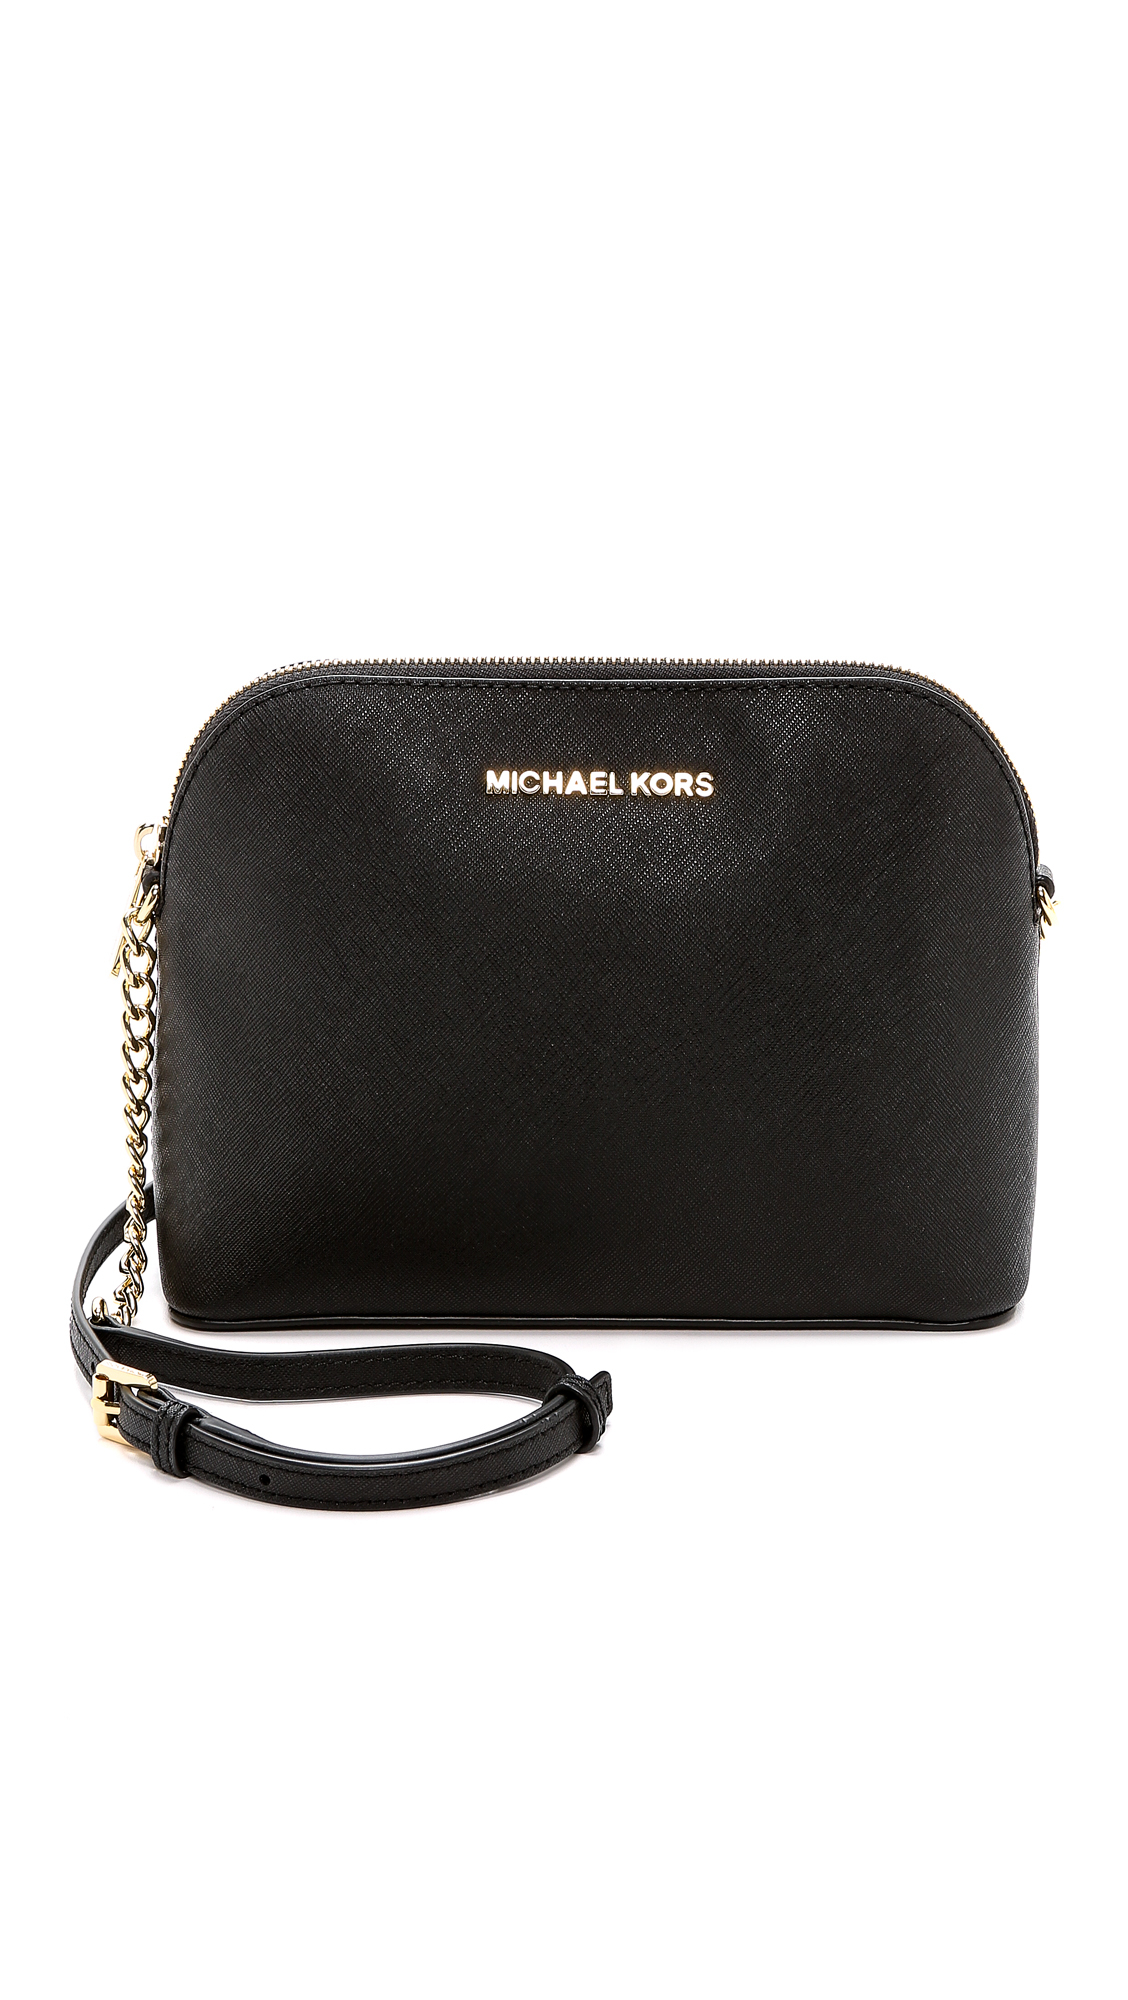 MICHAEL Michael Kors Leather Cindy Dome Cross Body Bag in Black